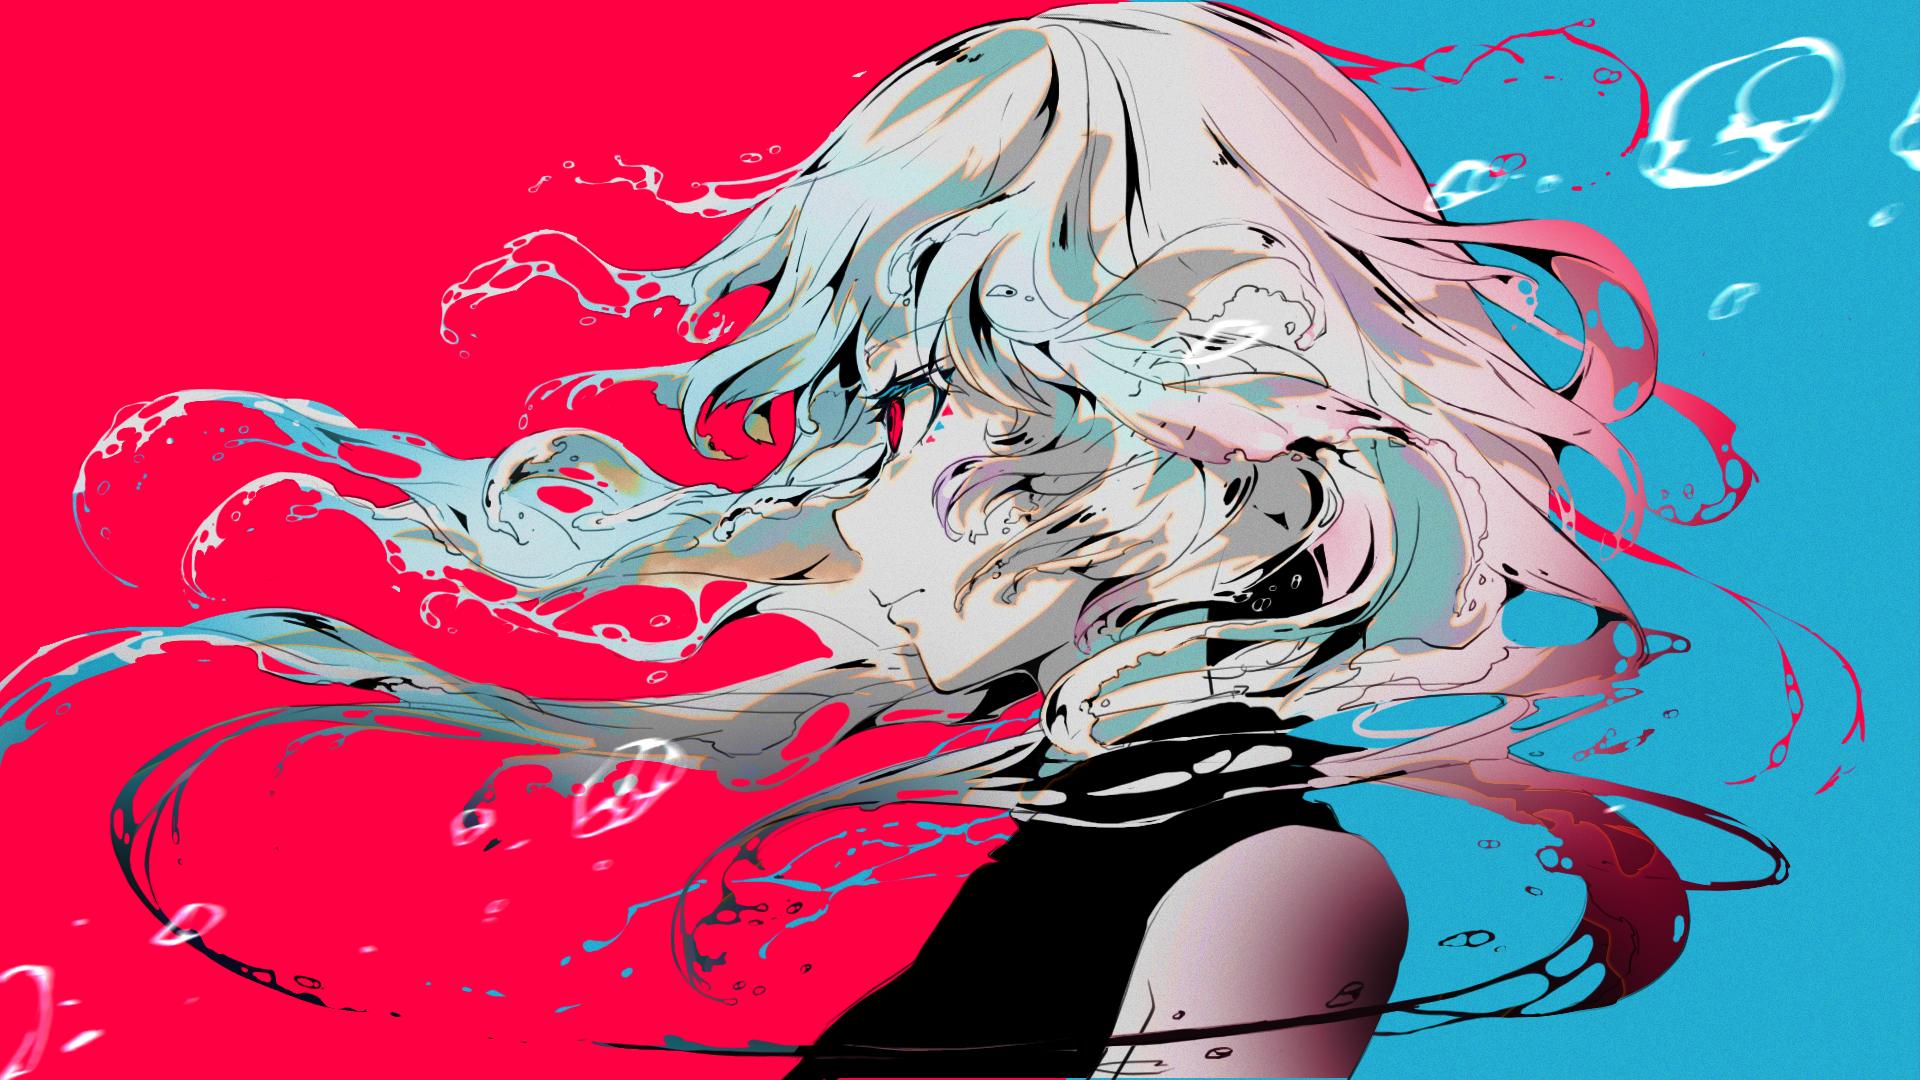 Anime 1920x1080 red eyes blue hair red blue anime anime girls face profile original characters white hair redhead multi-colored hair simple background pale black shirt bare shoulders 2D artwork Sanamisa